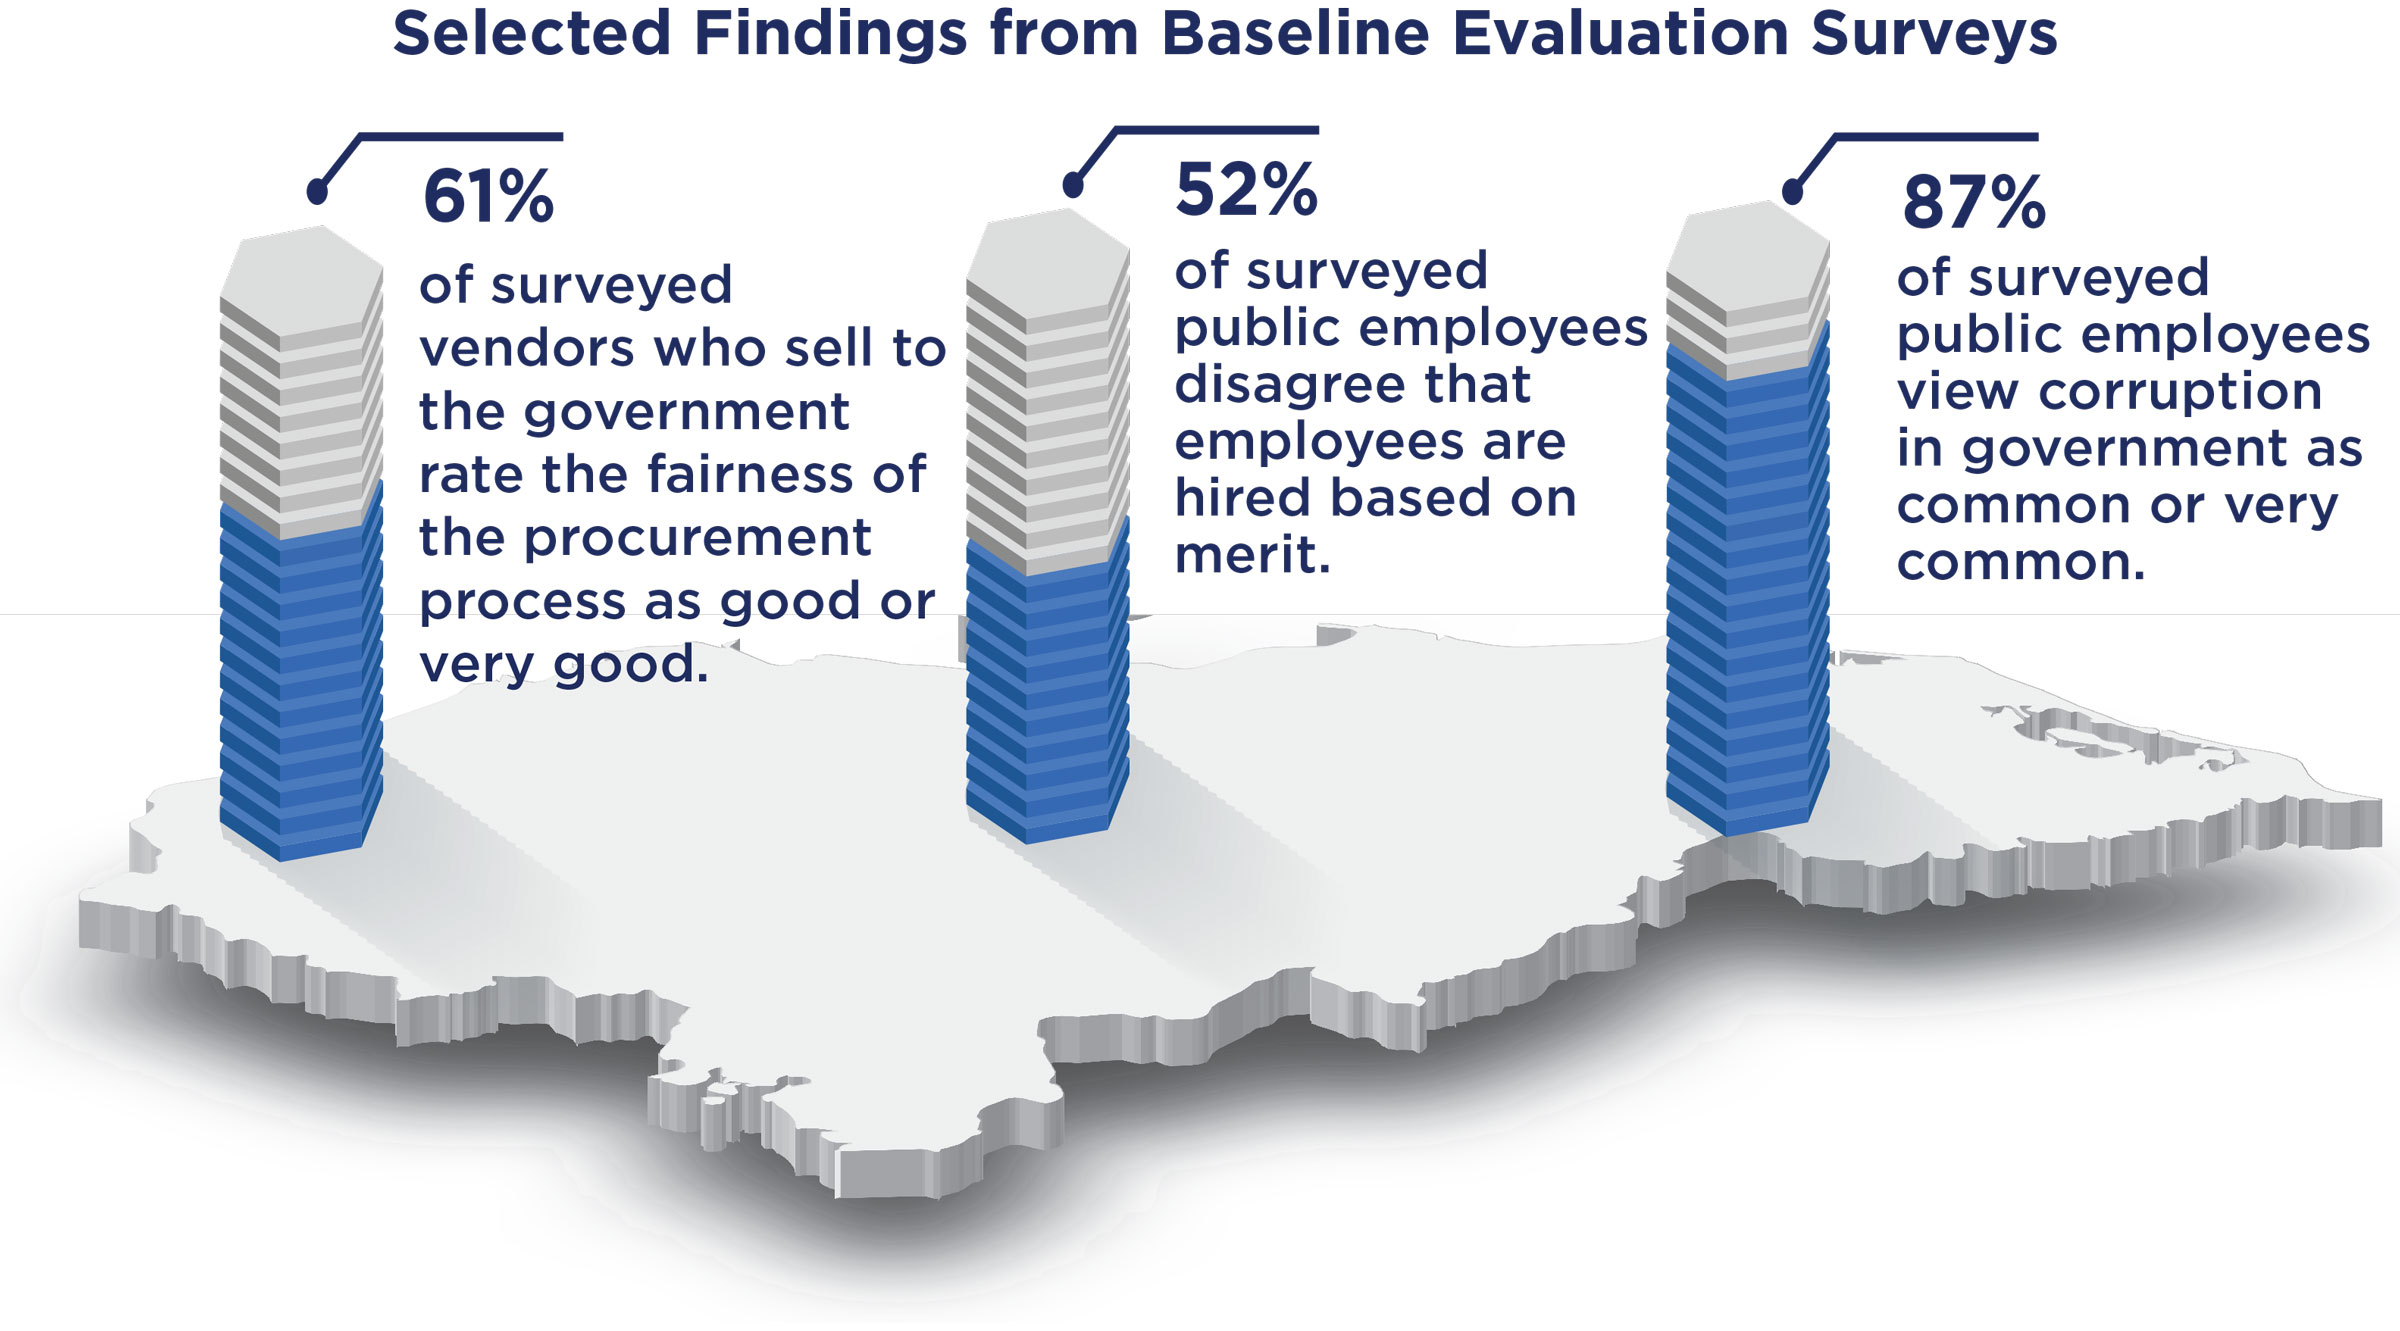 Visual showing selected findings from baseline evaluation surveys.